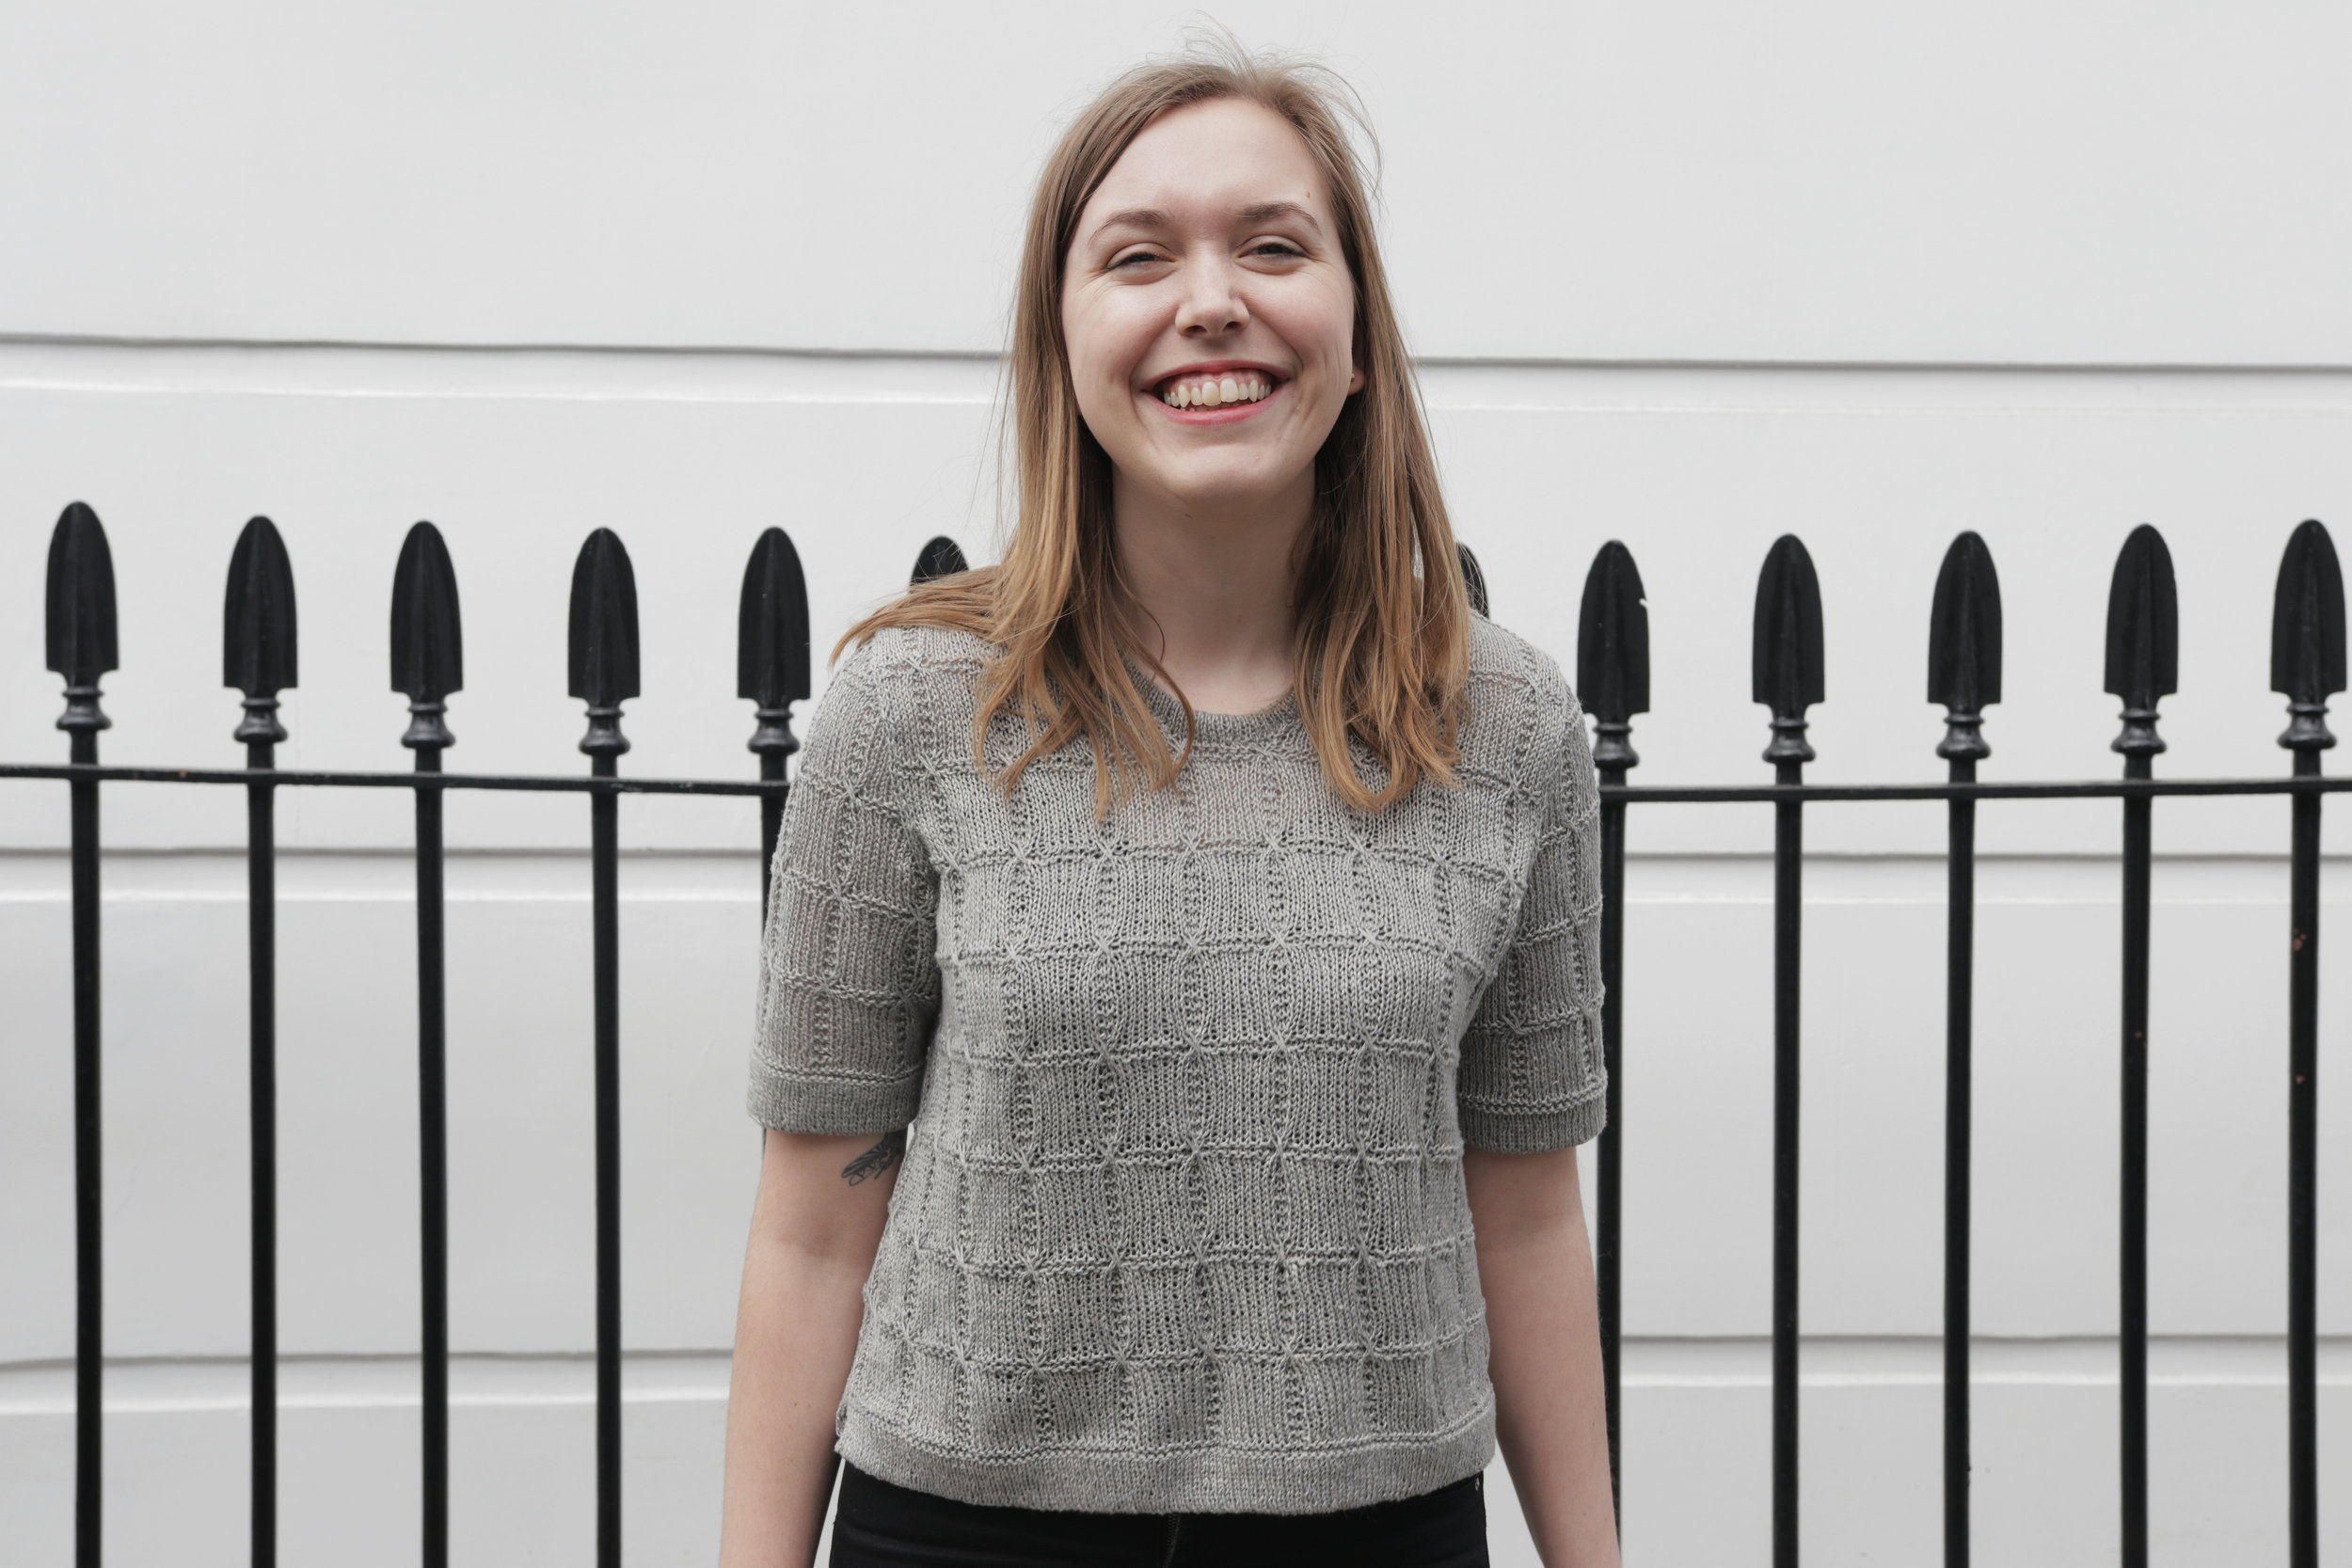 I will teach you how to design knitting patterns - Hi, I'm Clare. I teach knitters how to confidently design and sell their own knitting patterns in multiple sizes.